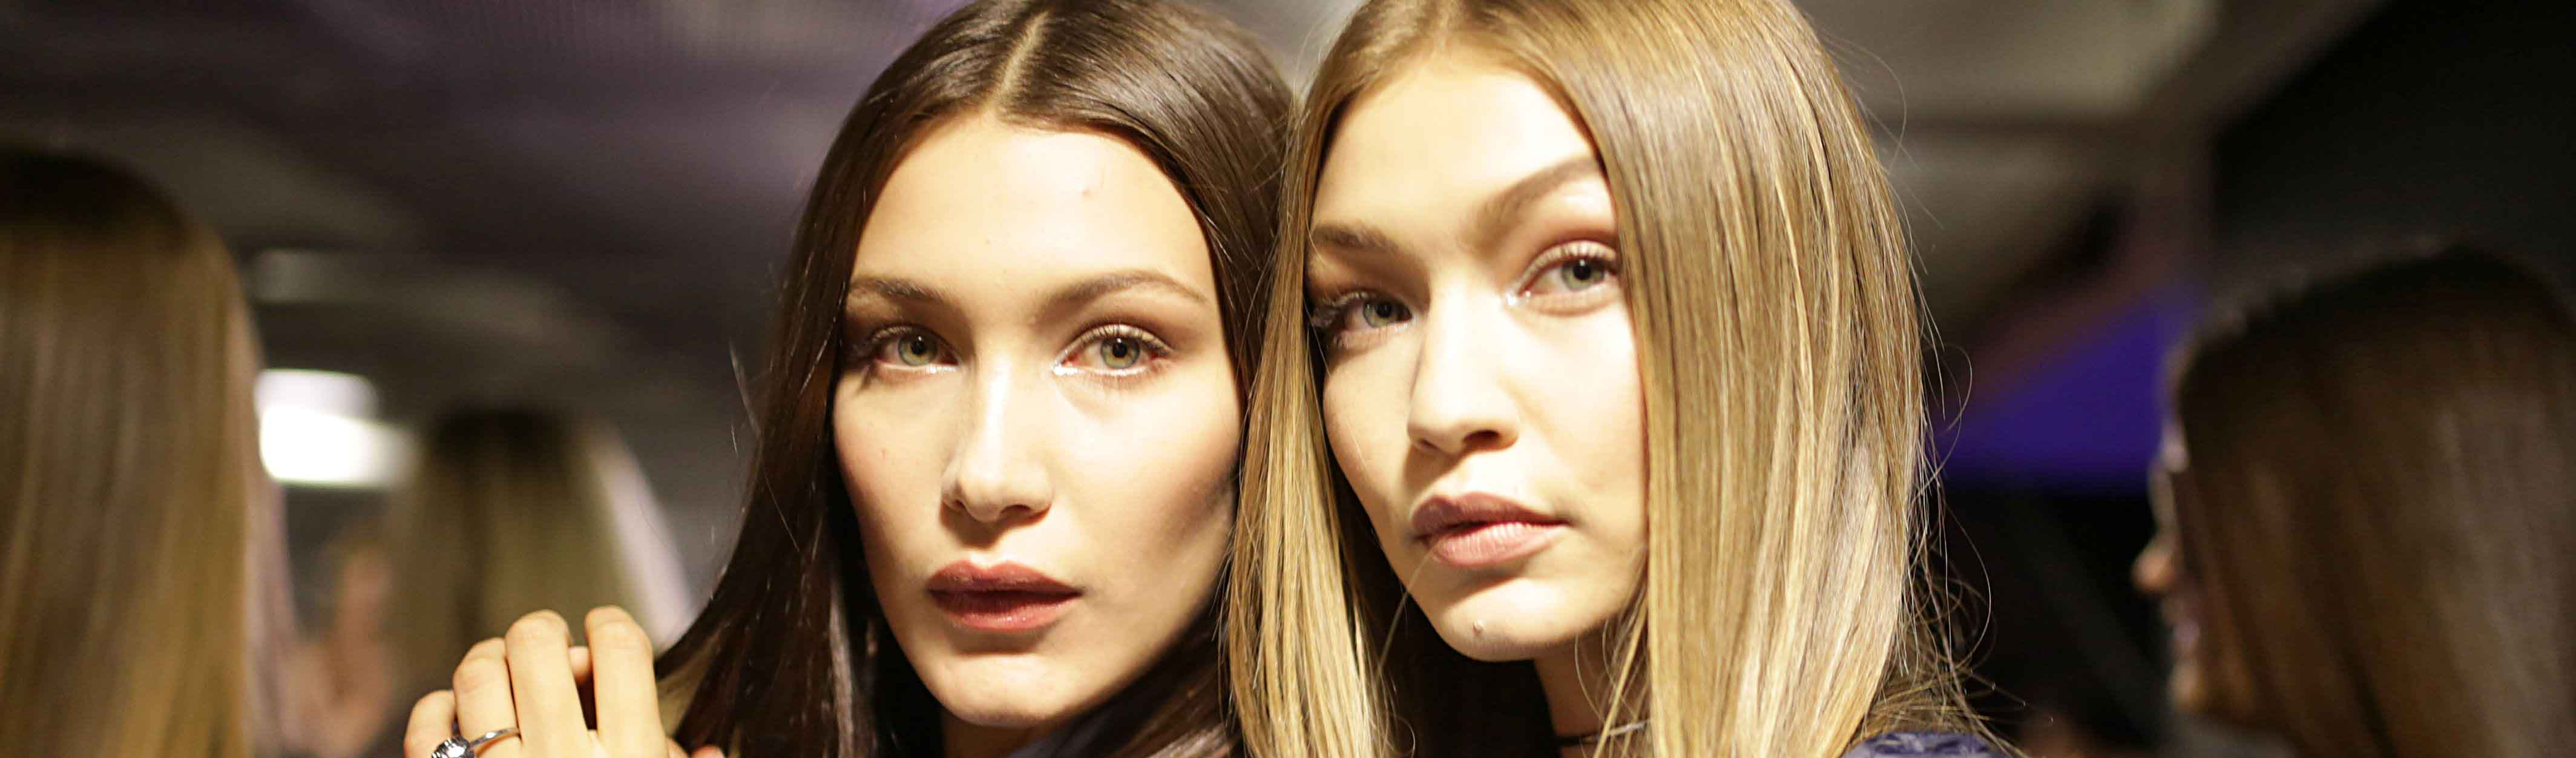 Gigi Hadid & Bella Hadid Wallpapers HD Bella Hadid and Gigi Wallpapers HD